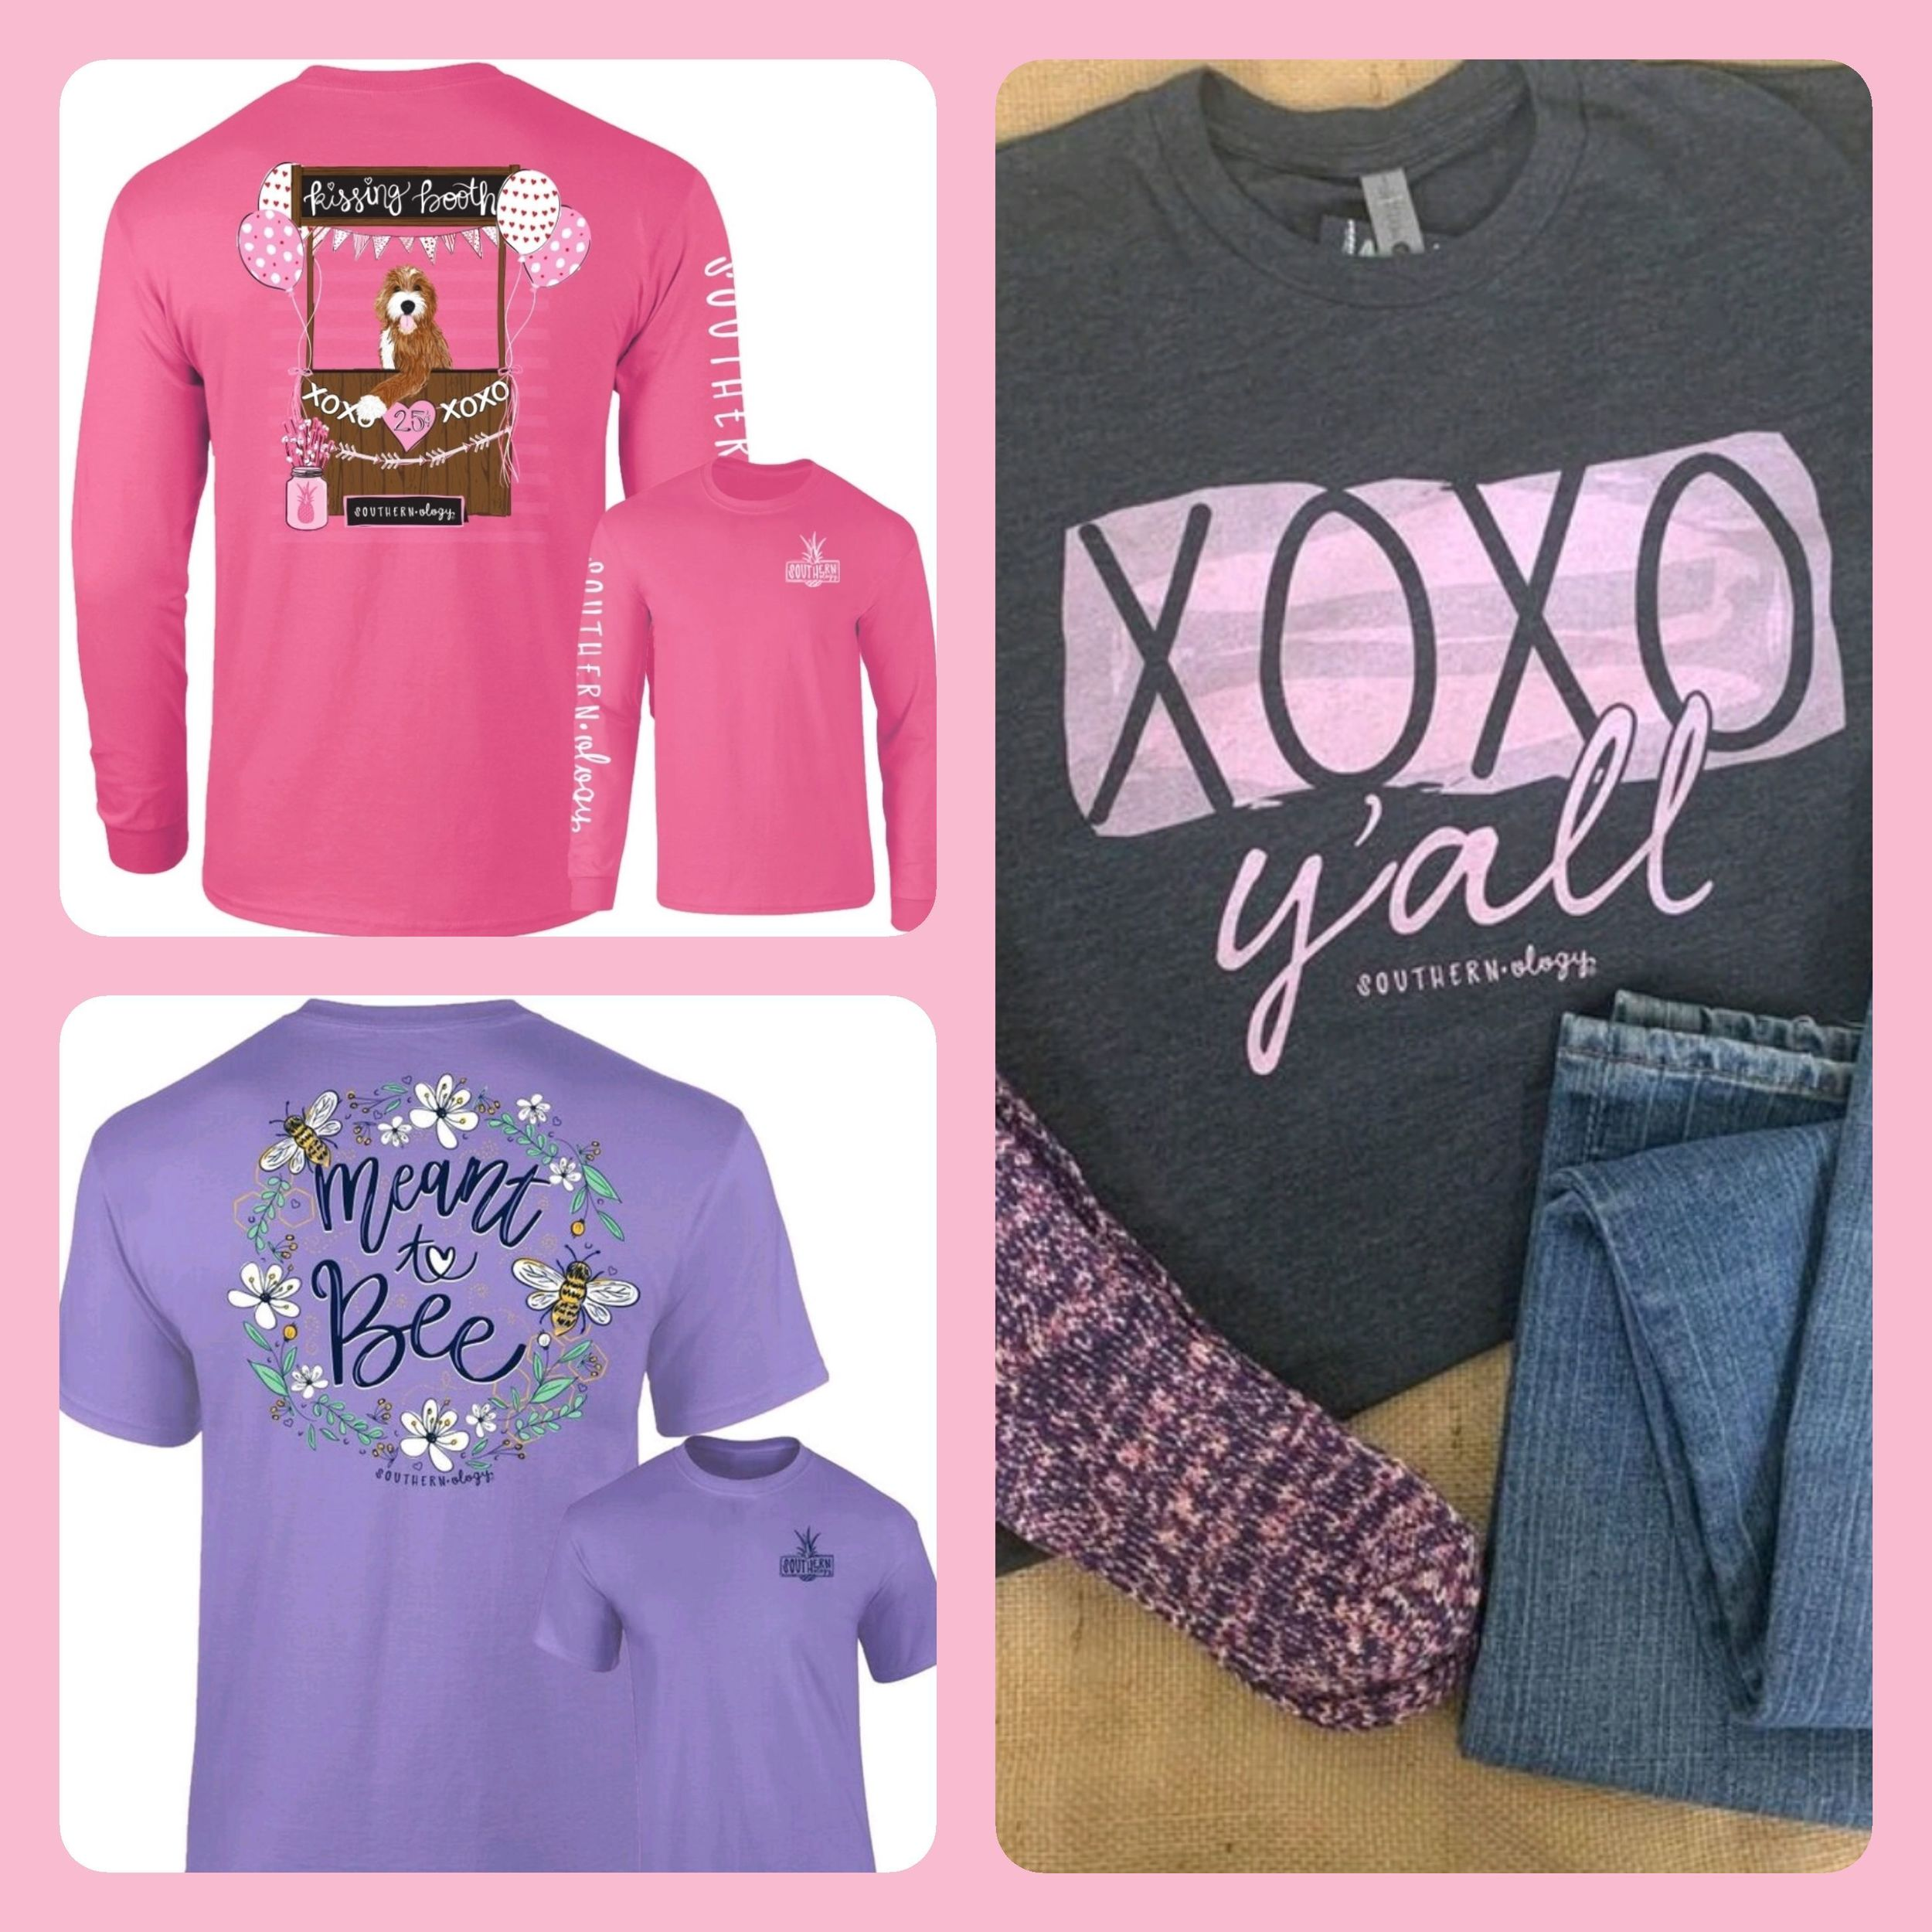 New Southernology Valentine Shirts Now in stock in Williamston and Honea Path. Sizes S-3XL thumbnail